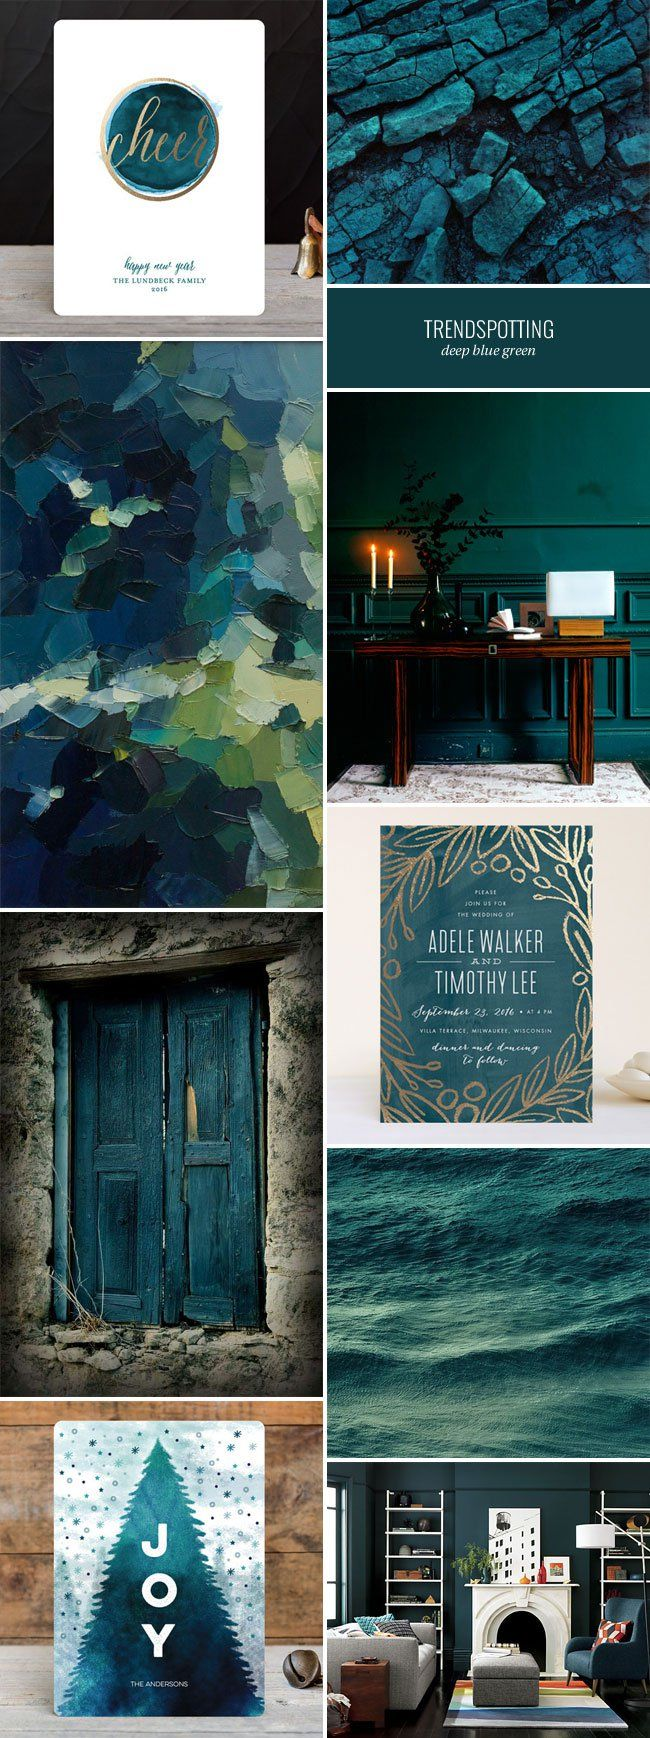 Blue bedroom color design - 2016 Stationery Color Trends Deep Blue Green